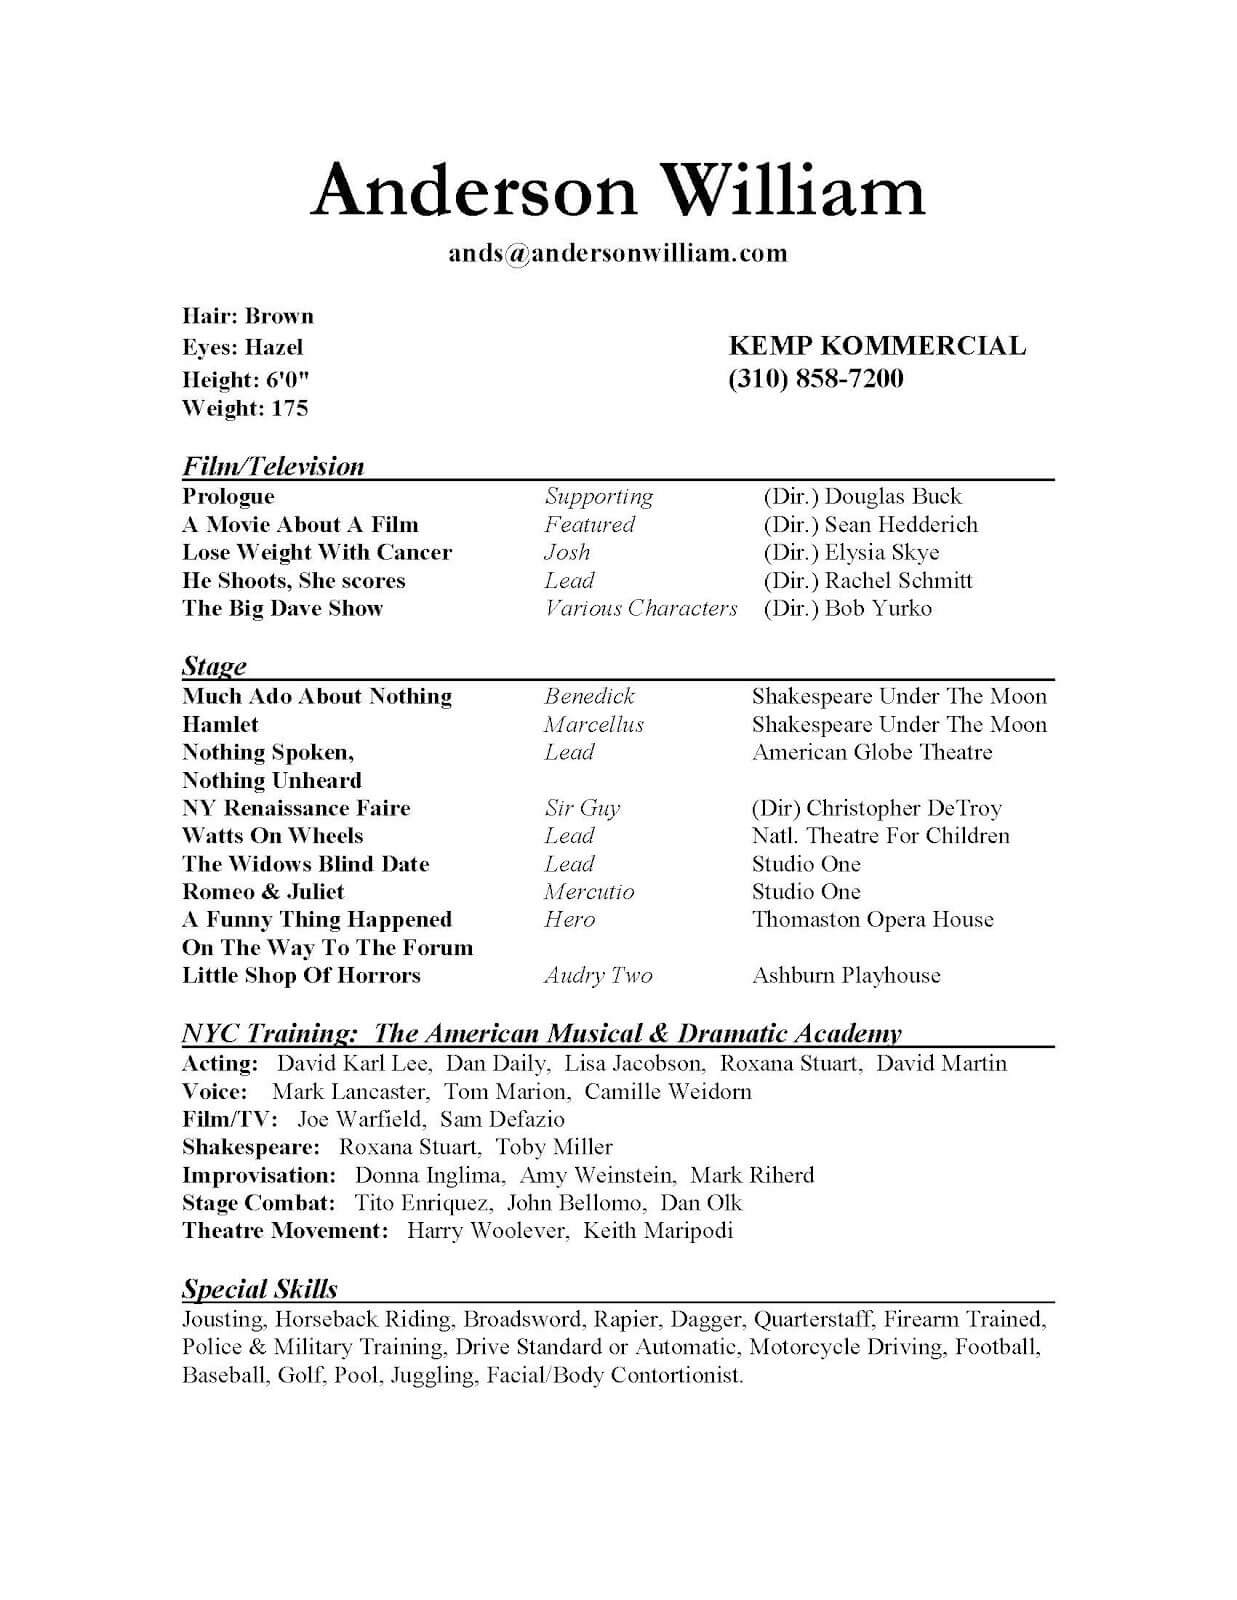 009 Beginner Actor Resume Template Unusual Ideas Beginning In Theatrical Resume Template Word